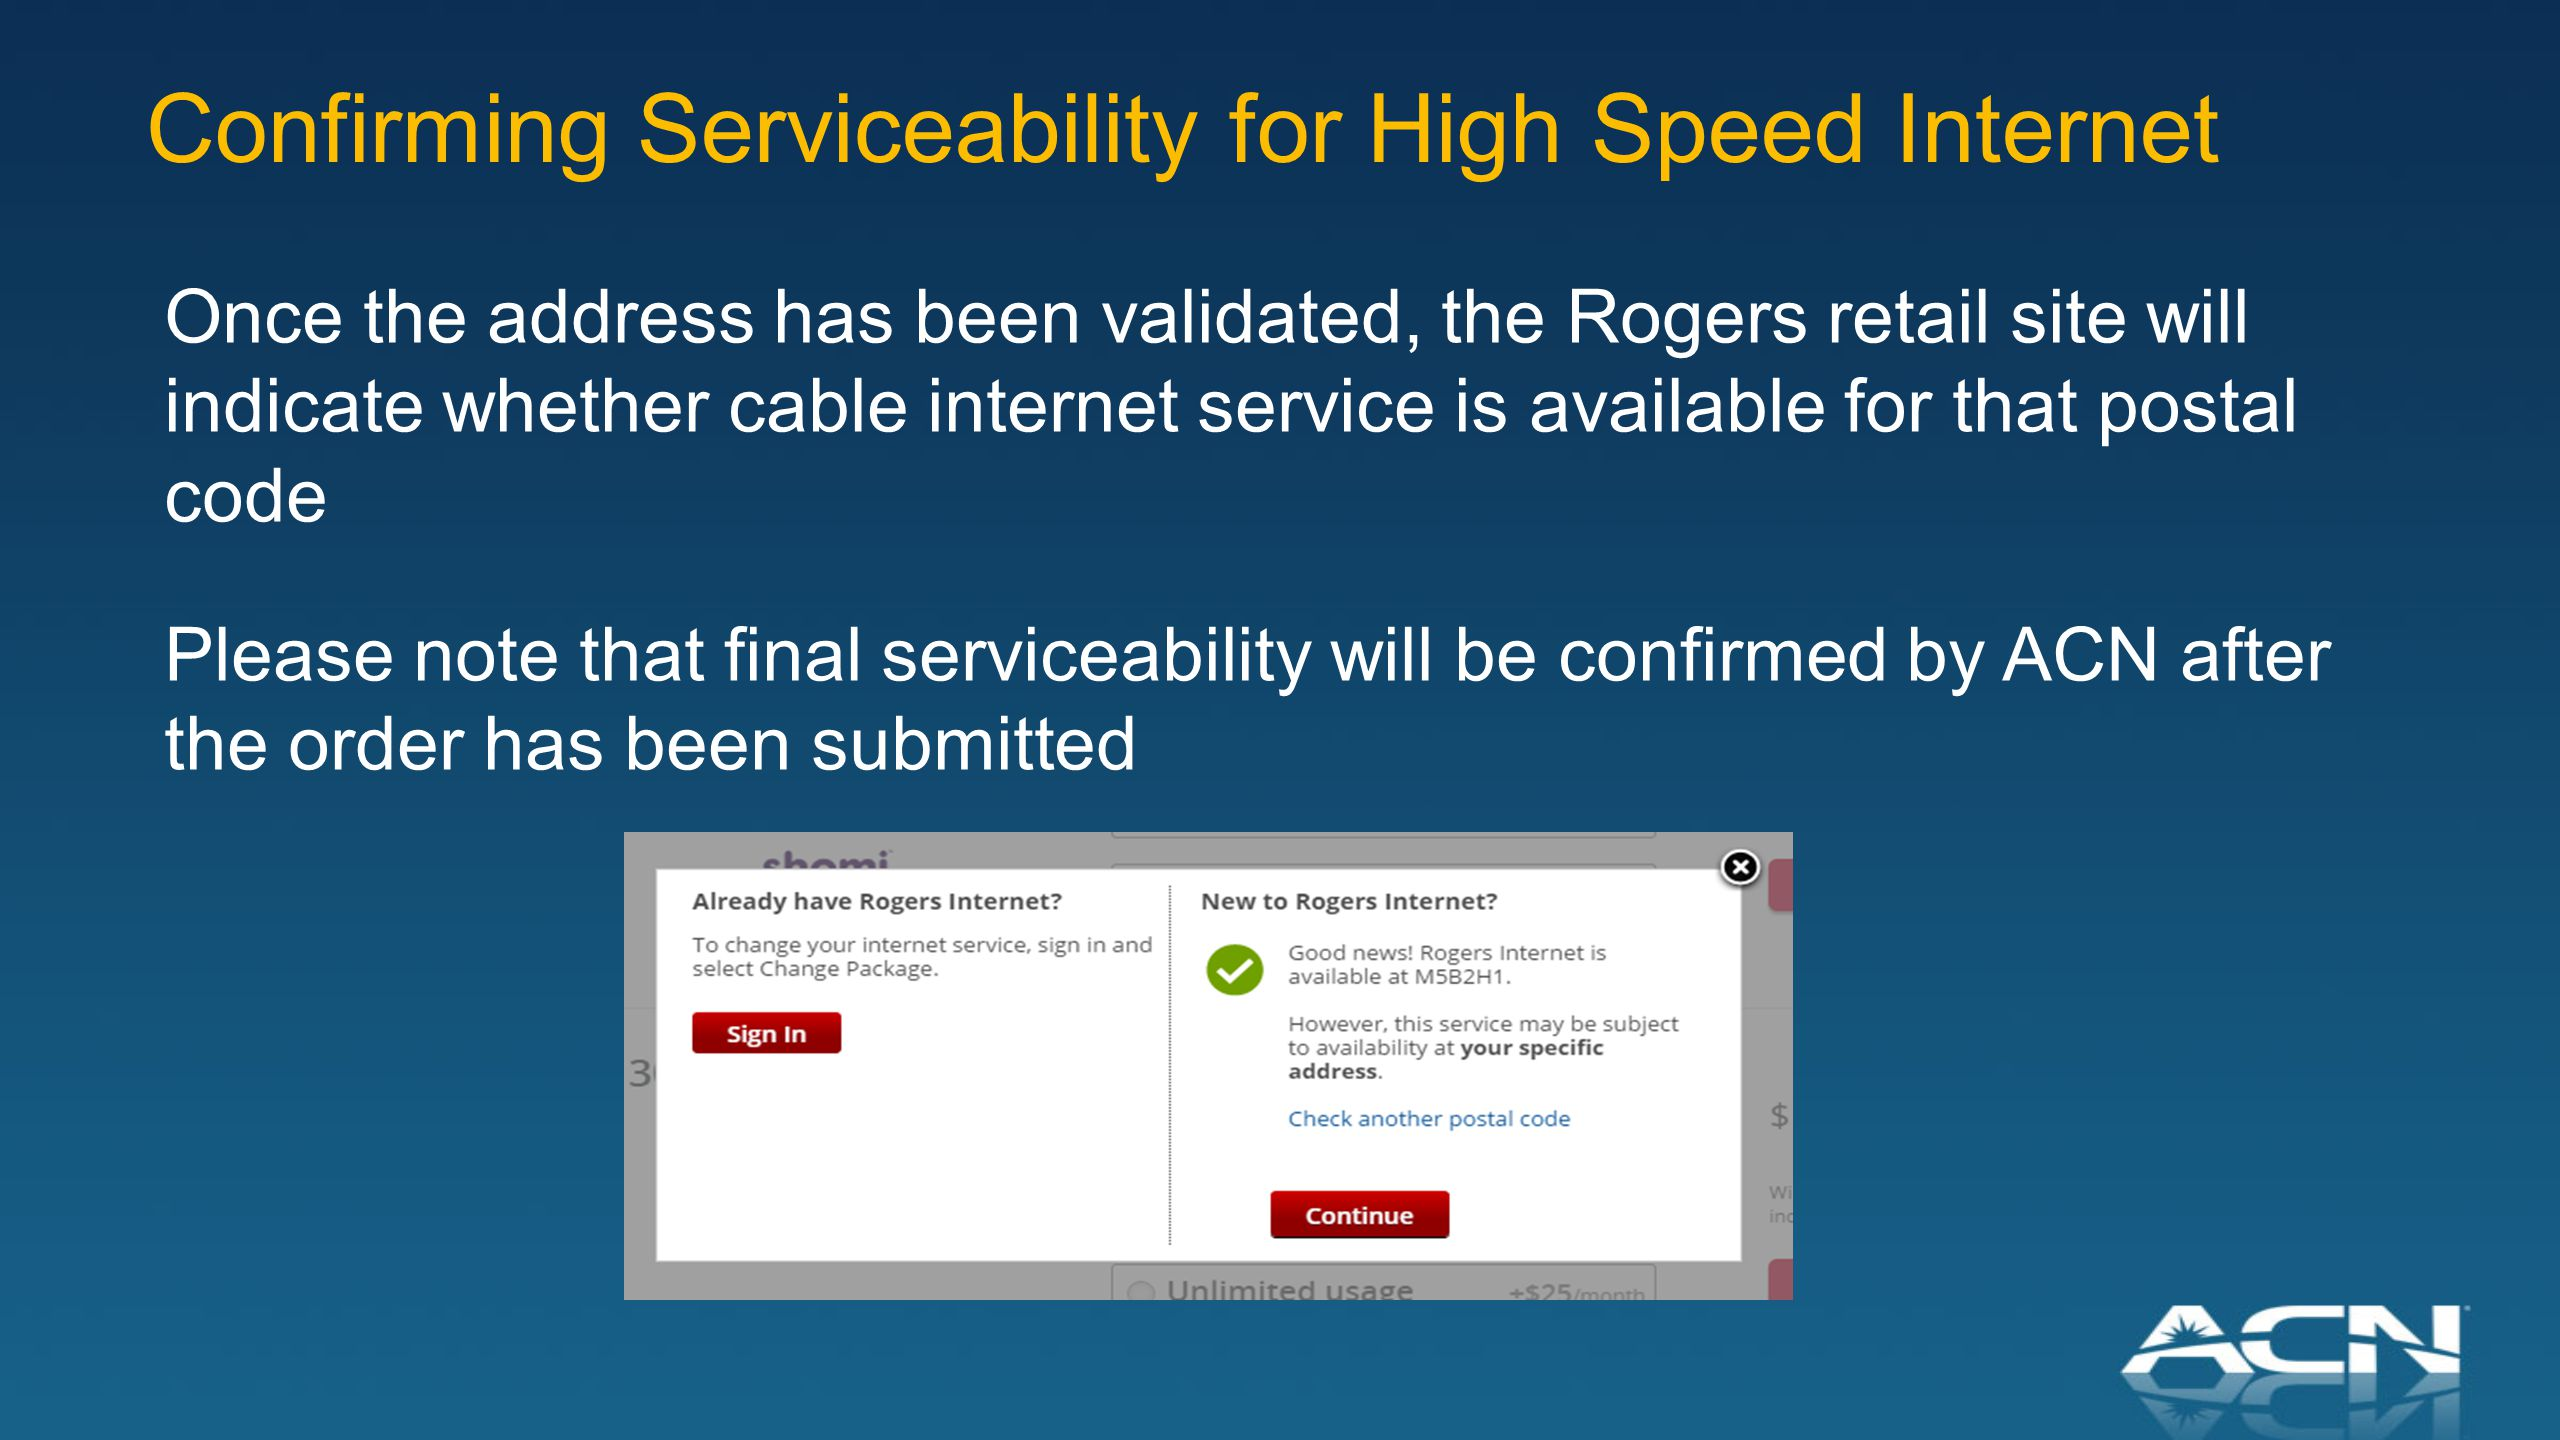 Confirming Serviceability for High Speed Internet Once the address has been validated, the Rogers retail site will indicate whether cable internet service is available for that postal code Please note that final serviceability will be confirmed by ACN after the order has been submitted